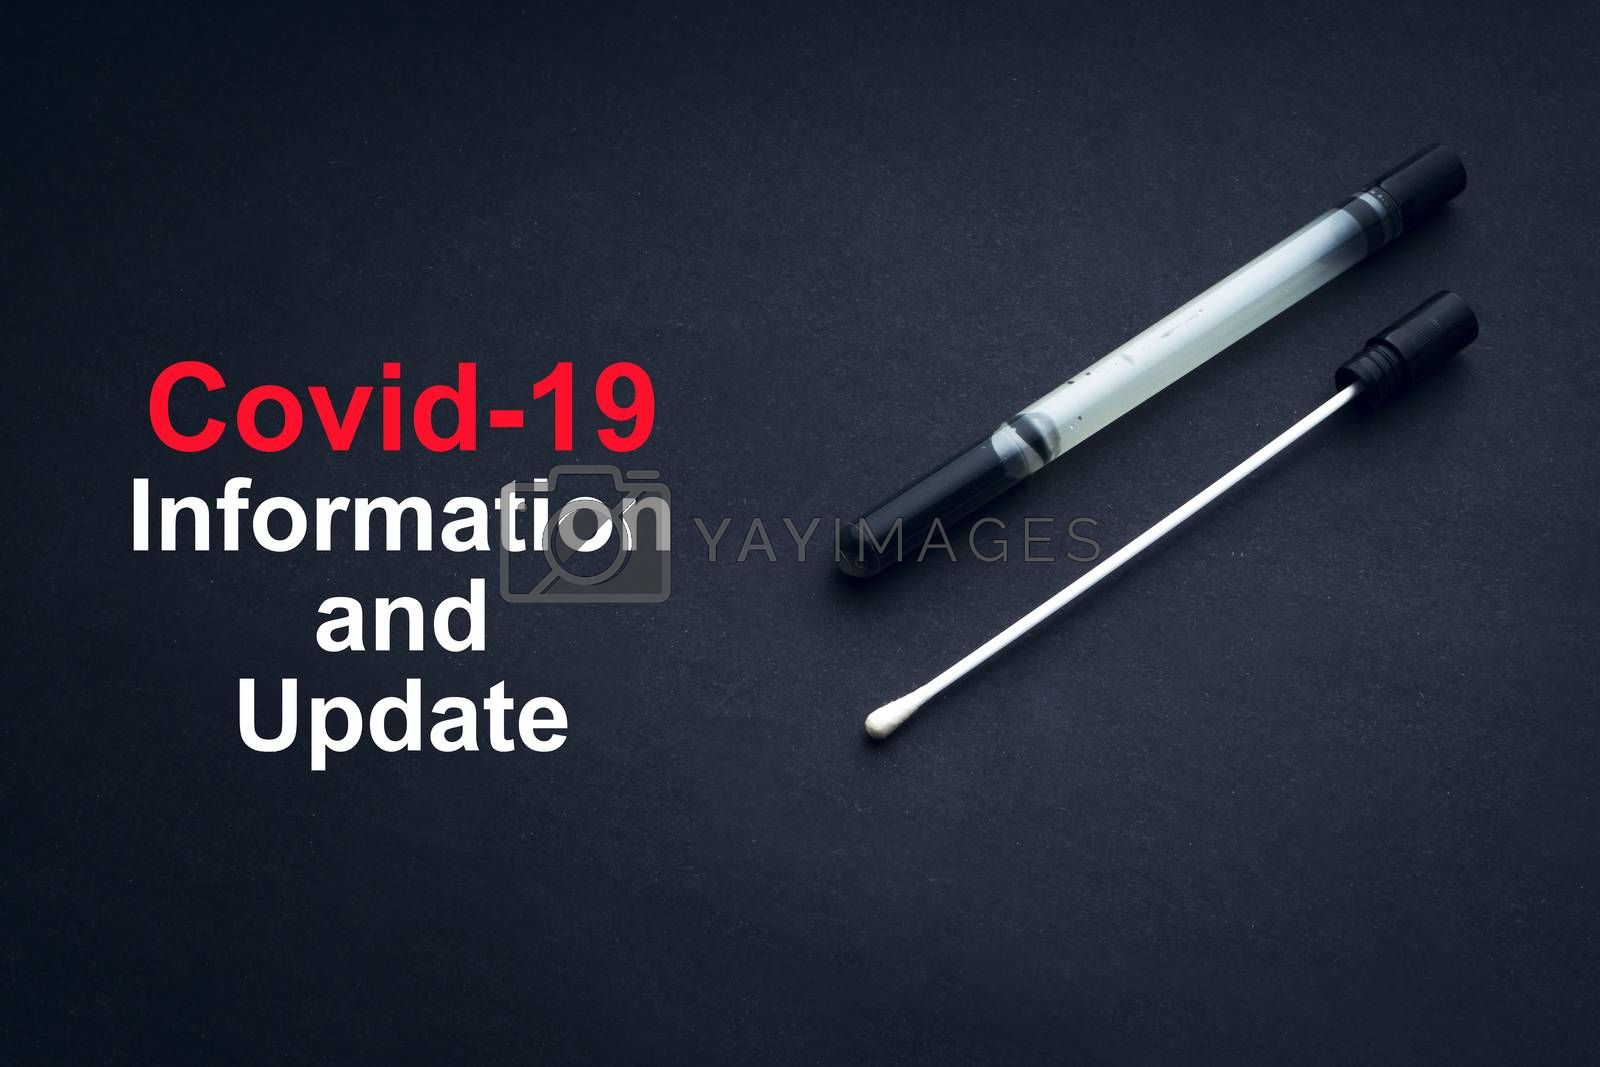 COVID-19 or CORONAVIRUS INFORMATION AND UPDATE text with medical swab on black background. Covid-19 or Coronavirus concept.